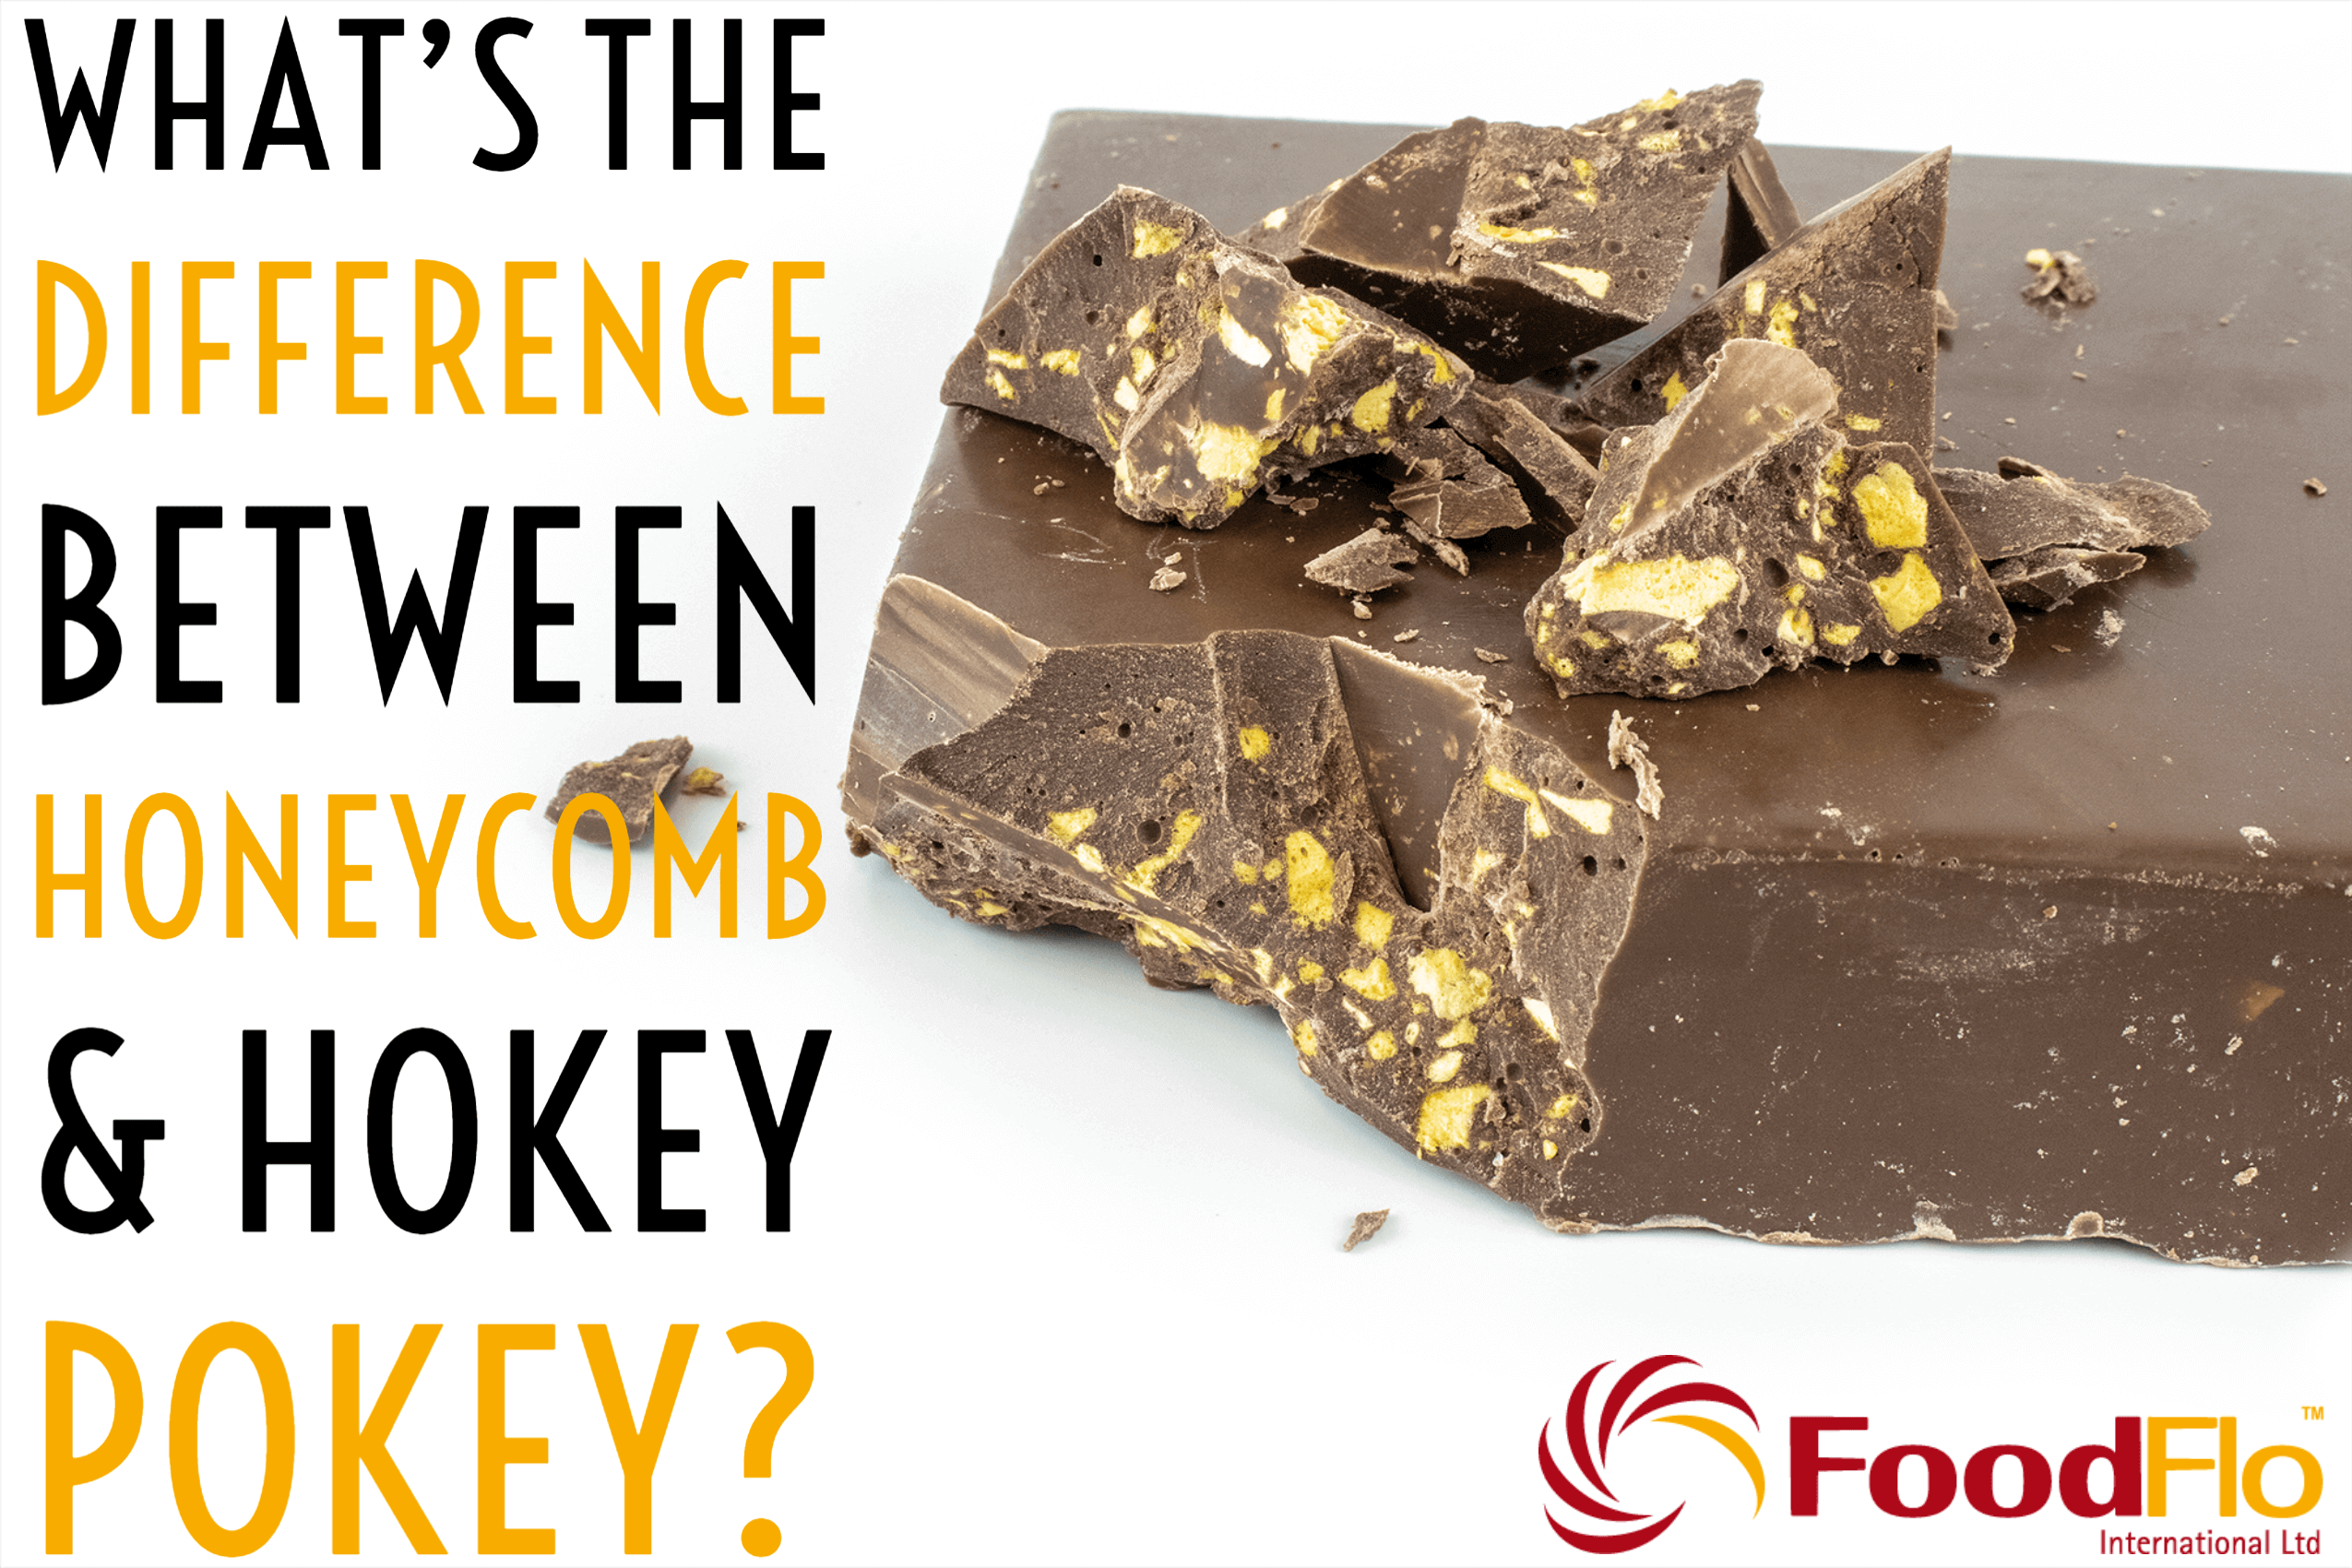 What's the difference between honeycomb and hokey pokey?